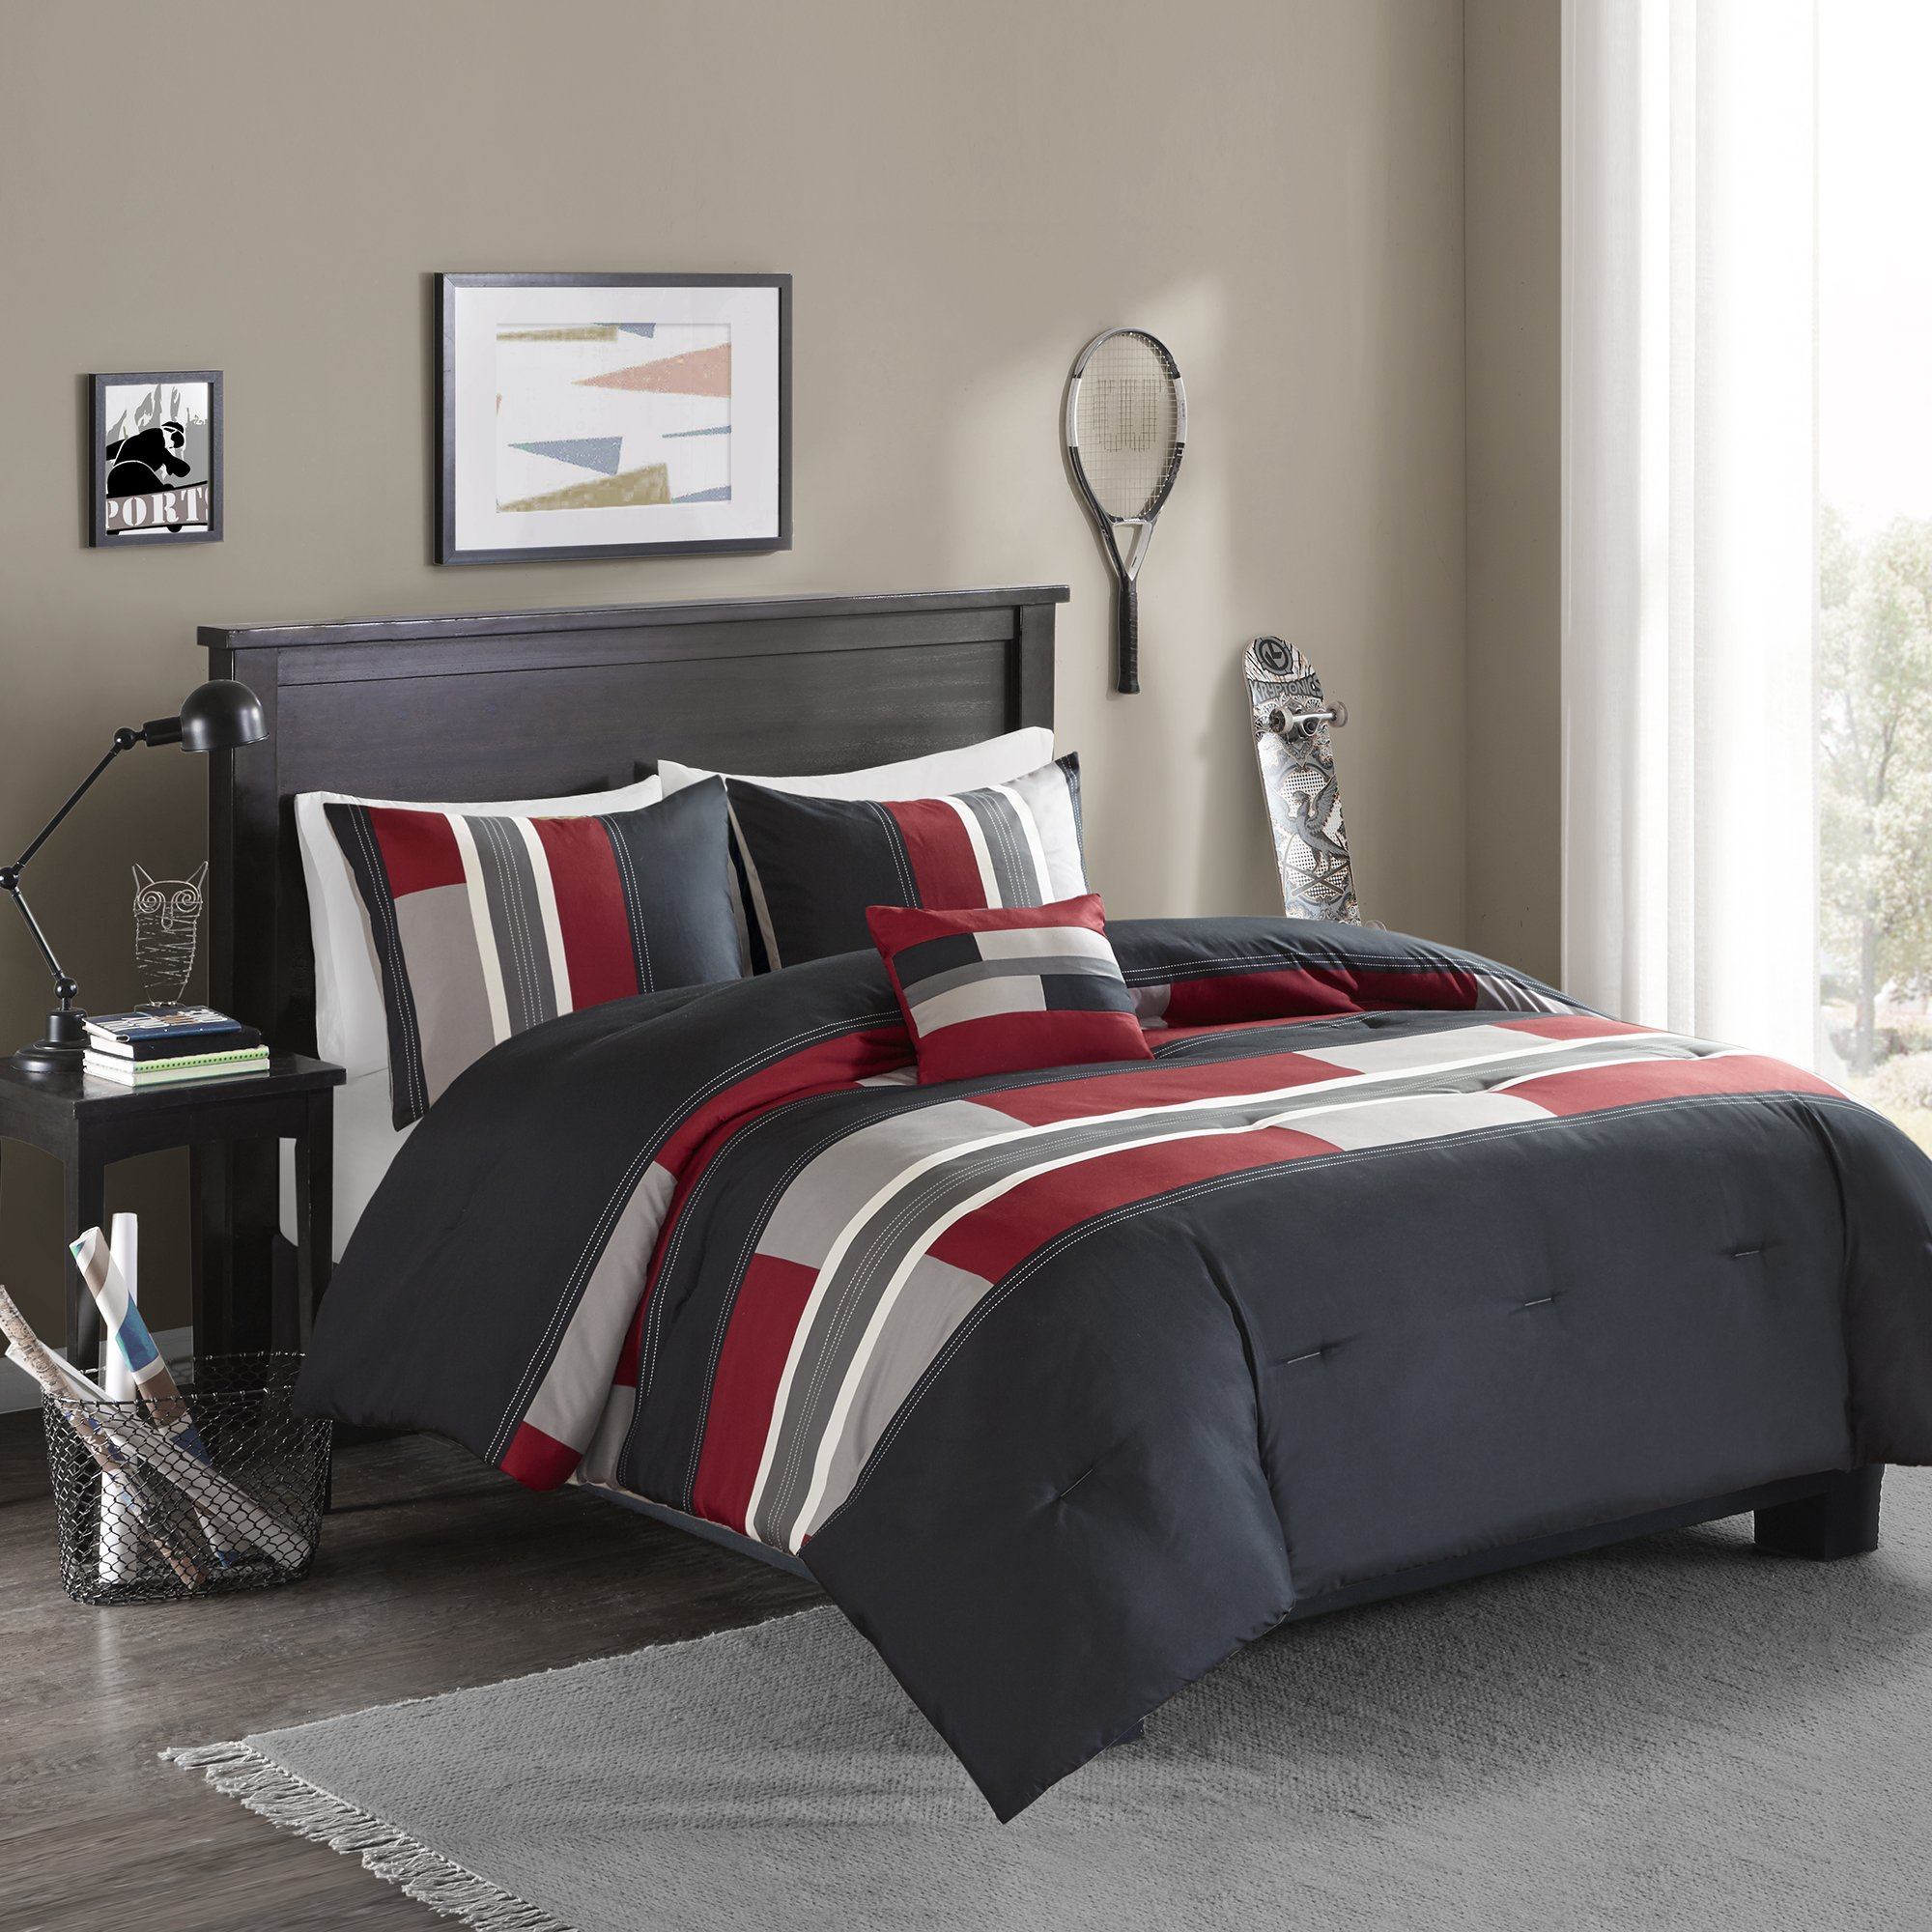 Comfort Spaces - Pierre Comforter Set - 3 Piece - Black/Red - Multi-Color pipeline Panels - Perfect For Dormitory - Boys - Twin/Twin XL size, includes 1 Comforter, 1 Sham, 1 Decorative Pillow